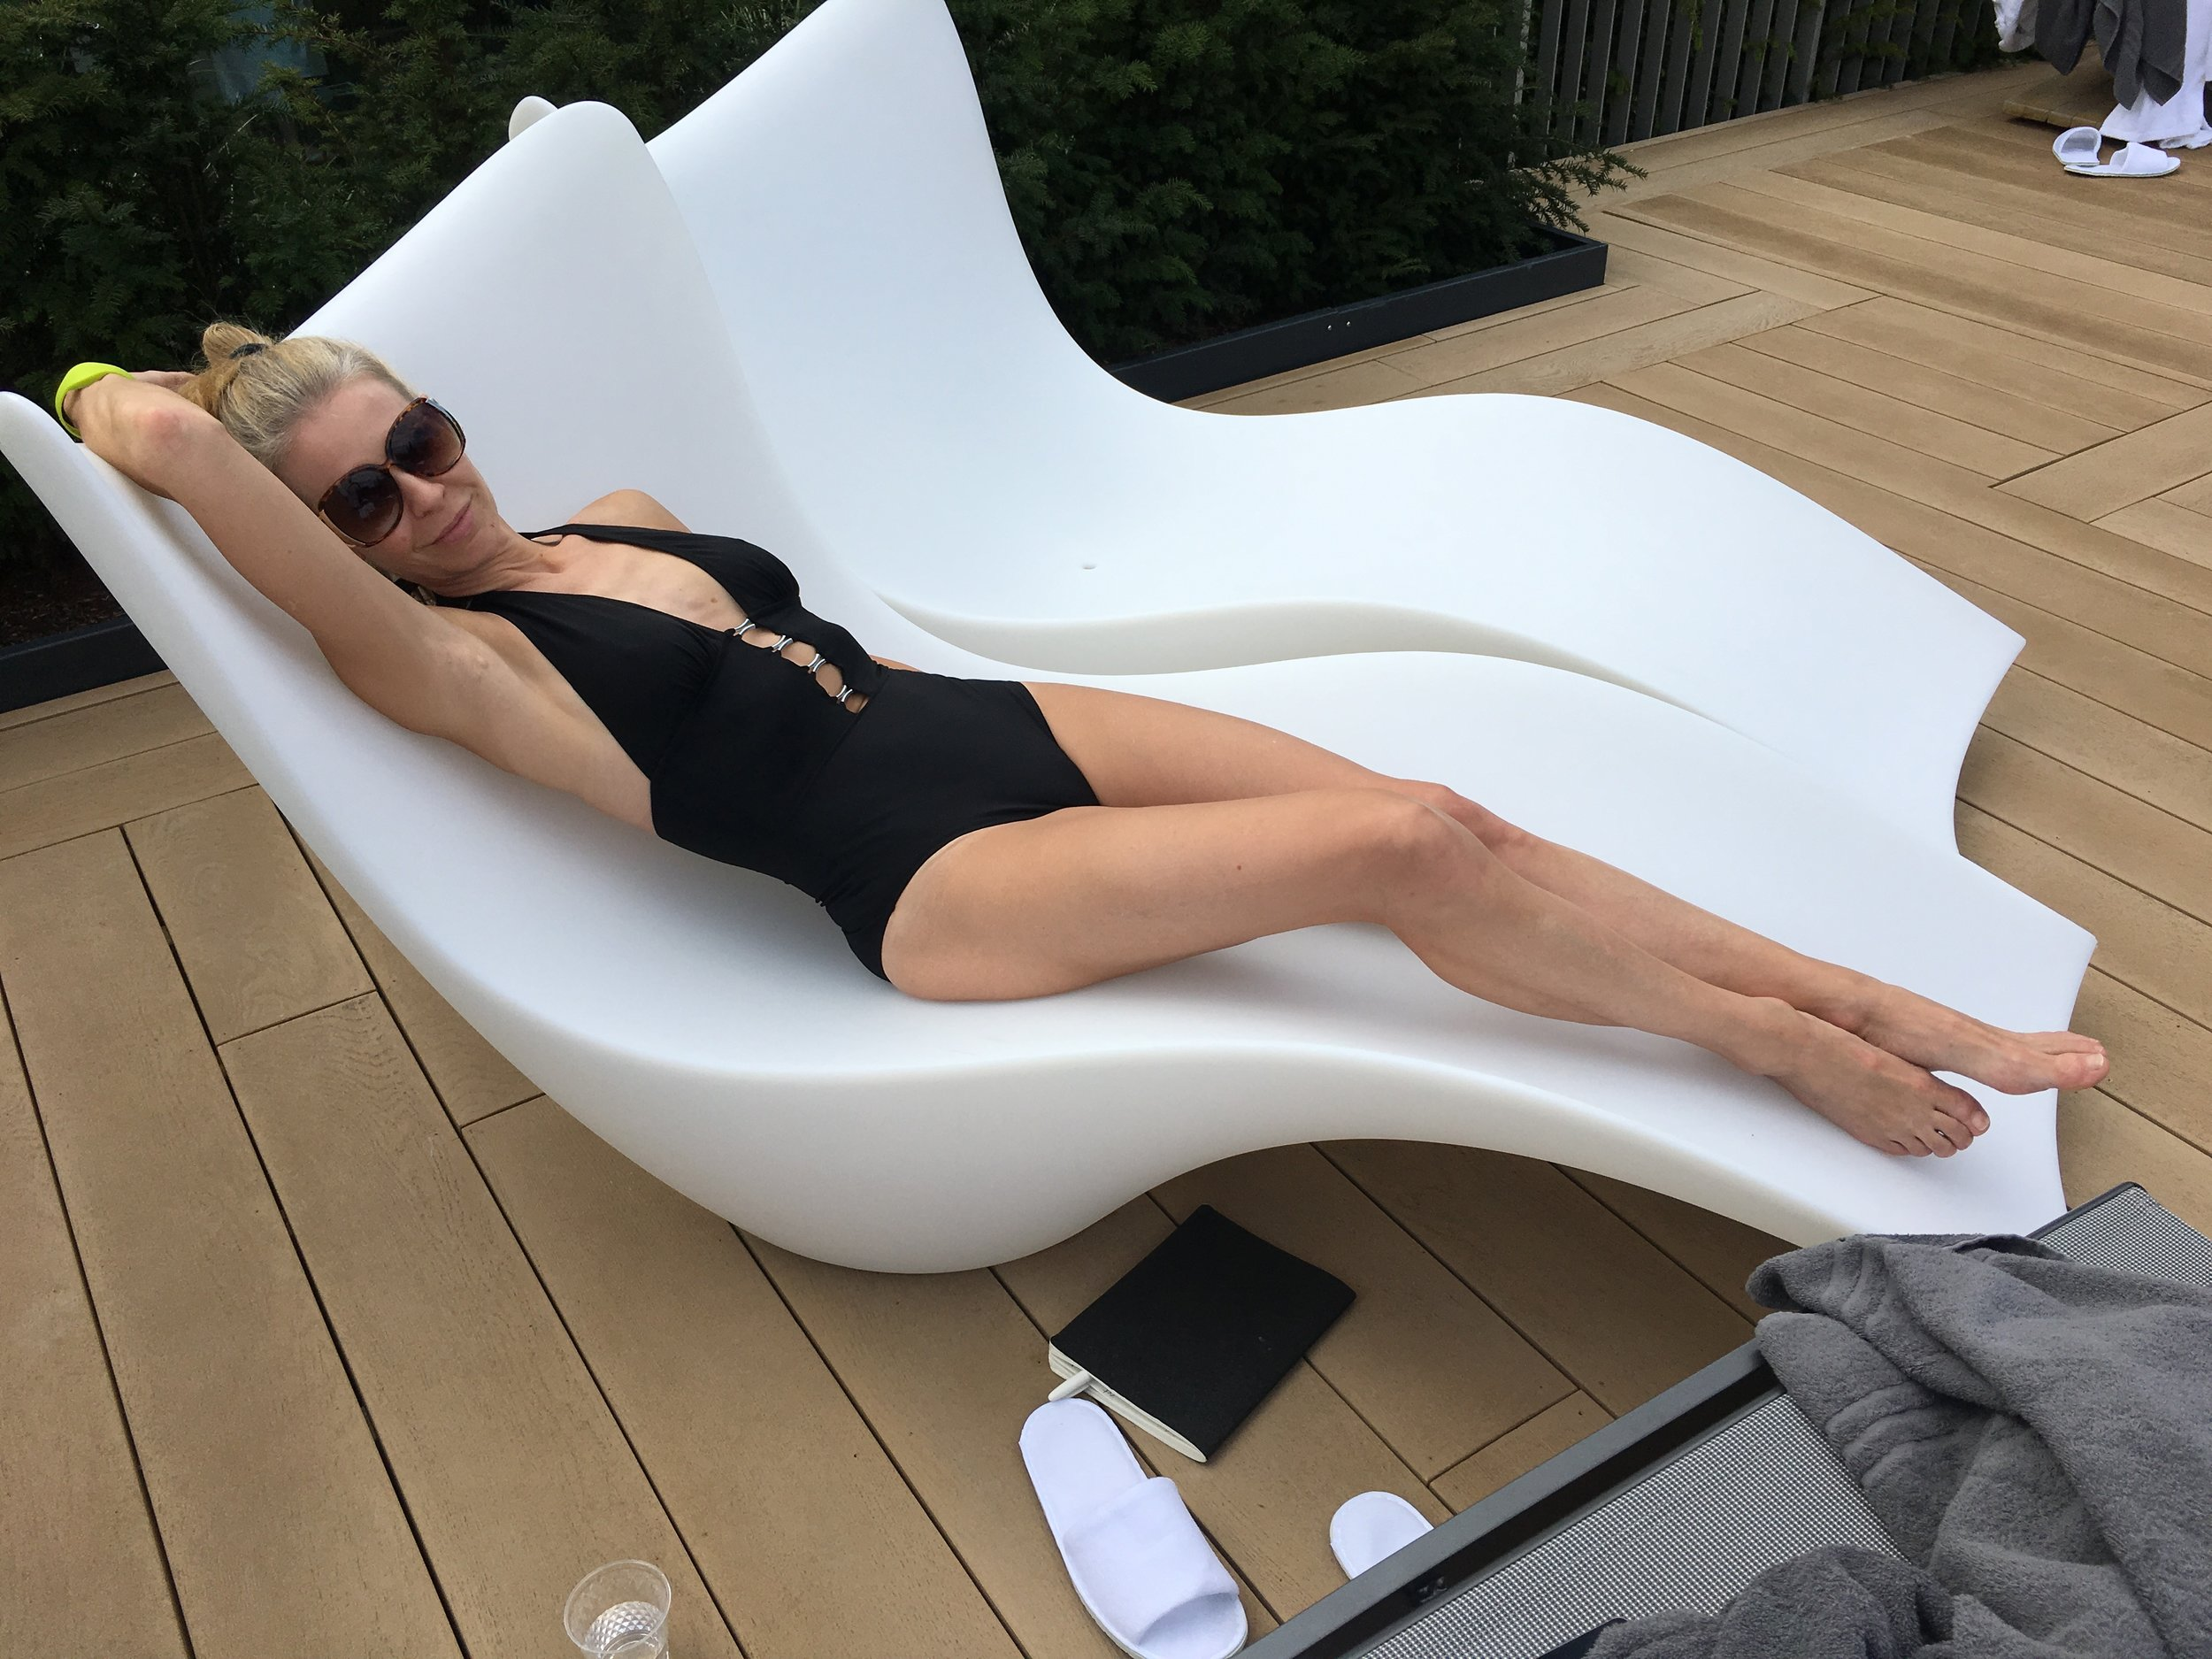 Me taking it easy in a futuristic-yet-retro lounger at Rudding Park Spa